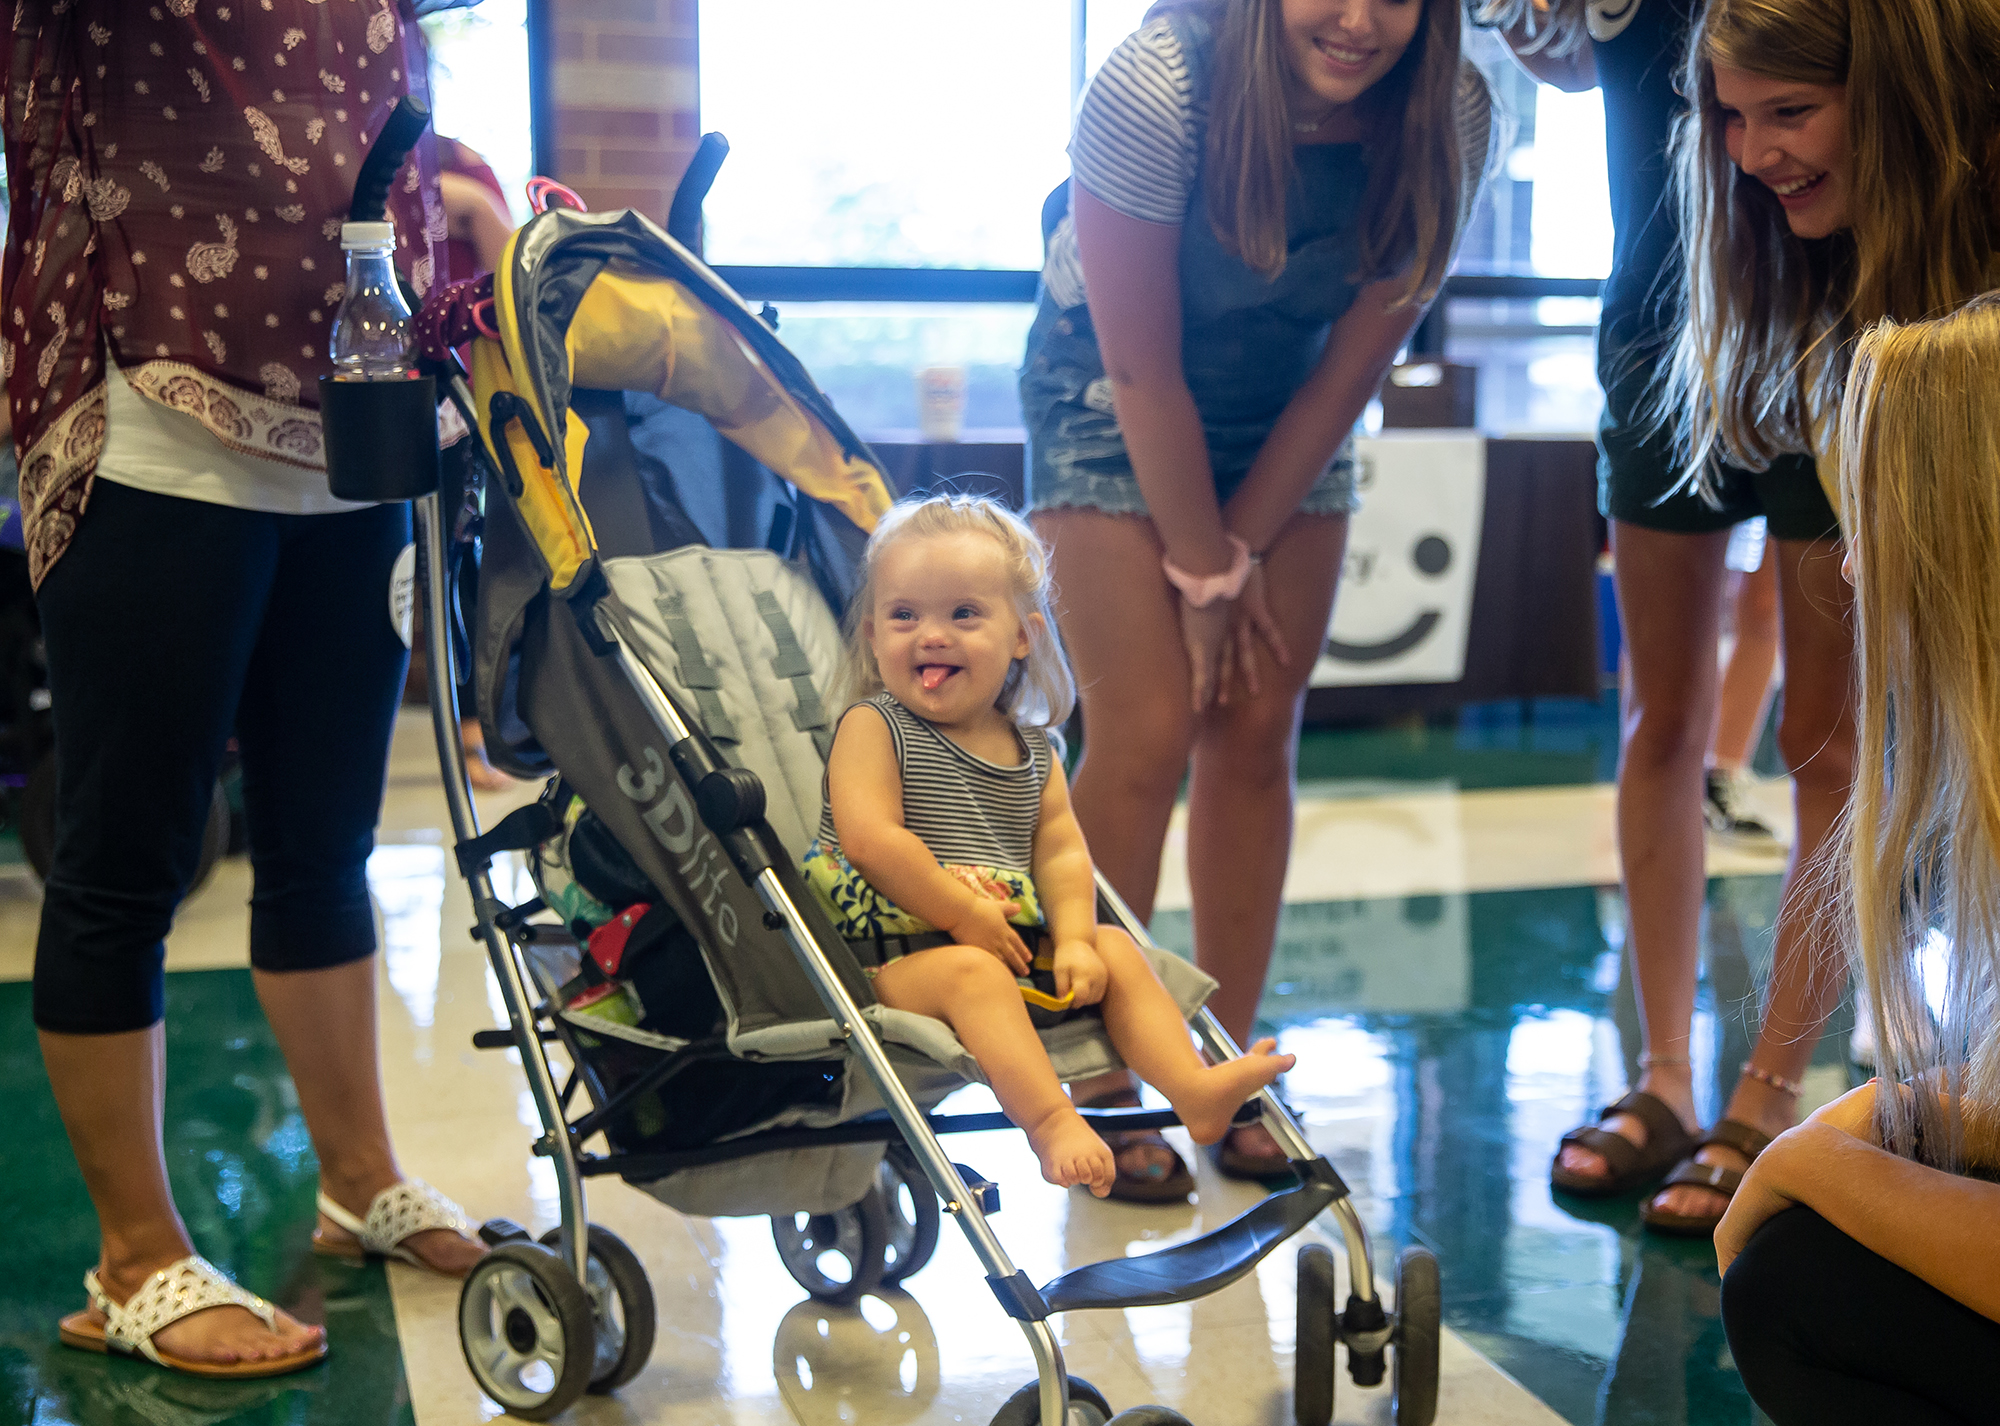 """Eighteen-month-old Emery Pyles, center, lights up with a smile as she showered by attention from the volunteers after her photoshoot during the Changing the Face of Beauty headshot clinic at Lindsay Elementary School, Friday, July 27, 2018, in Springfield, Ill. """"She seems to enjoy it,"""" said Christian Pyles of her daughter Emery who has Down Syndrome. """"She enjoys people and I could see this being something she would enjoy as she gets older if she wants to."""" Changing the Face of Beauty is nonprofit that aims to empower those living with disabilities through inclusion in advertising and media. The headshot clinic provides a collection of digital images for those with disabilities that can be used to submit to casting agencies. [Justin L. Fowler/The State Journal-Register]"""